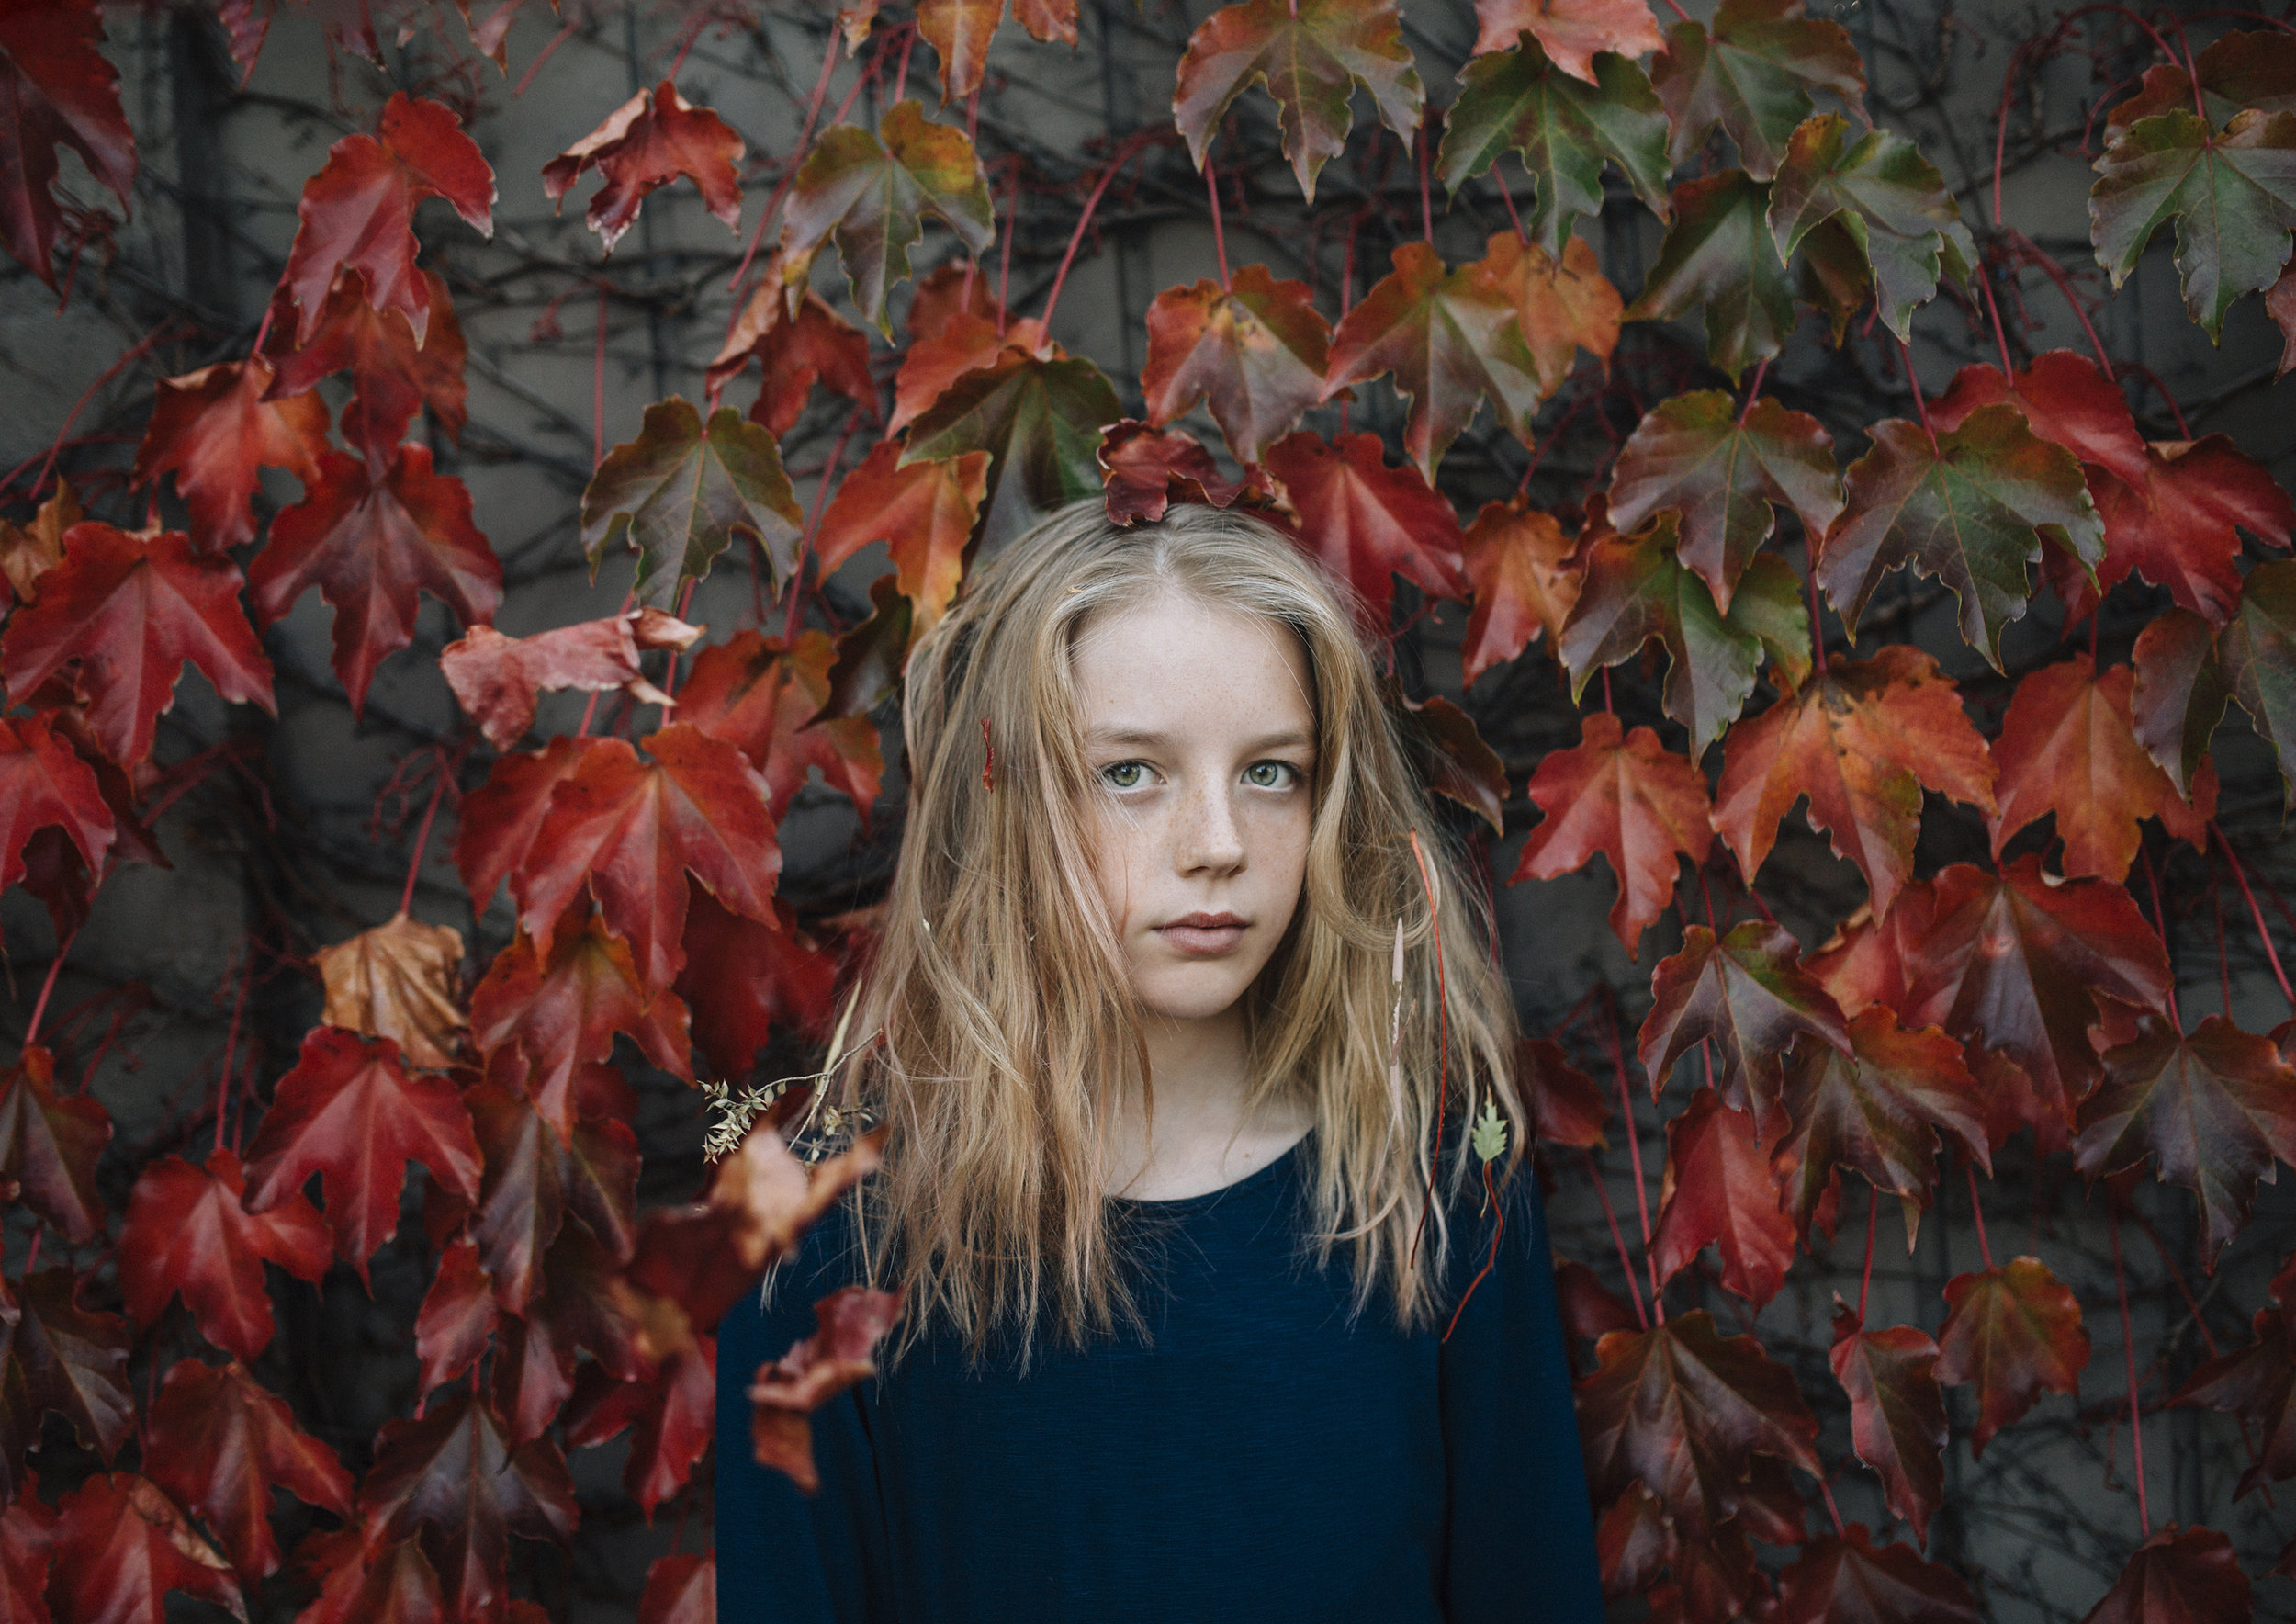 Tween girl posing in front of a wall of Autumn leaves